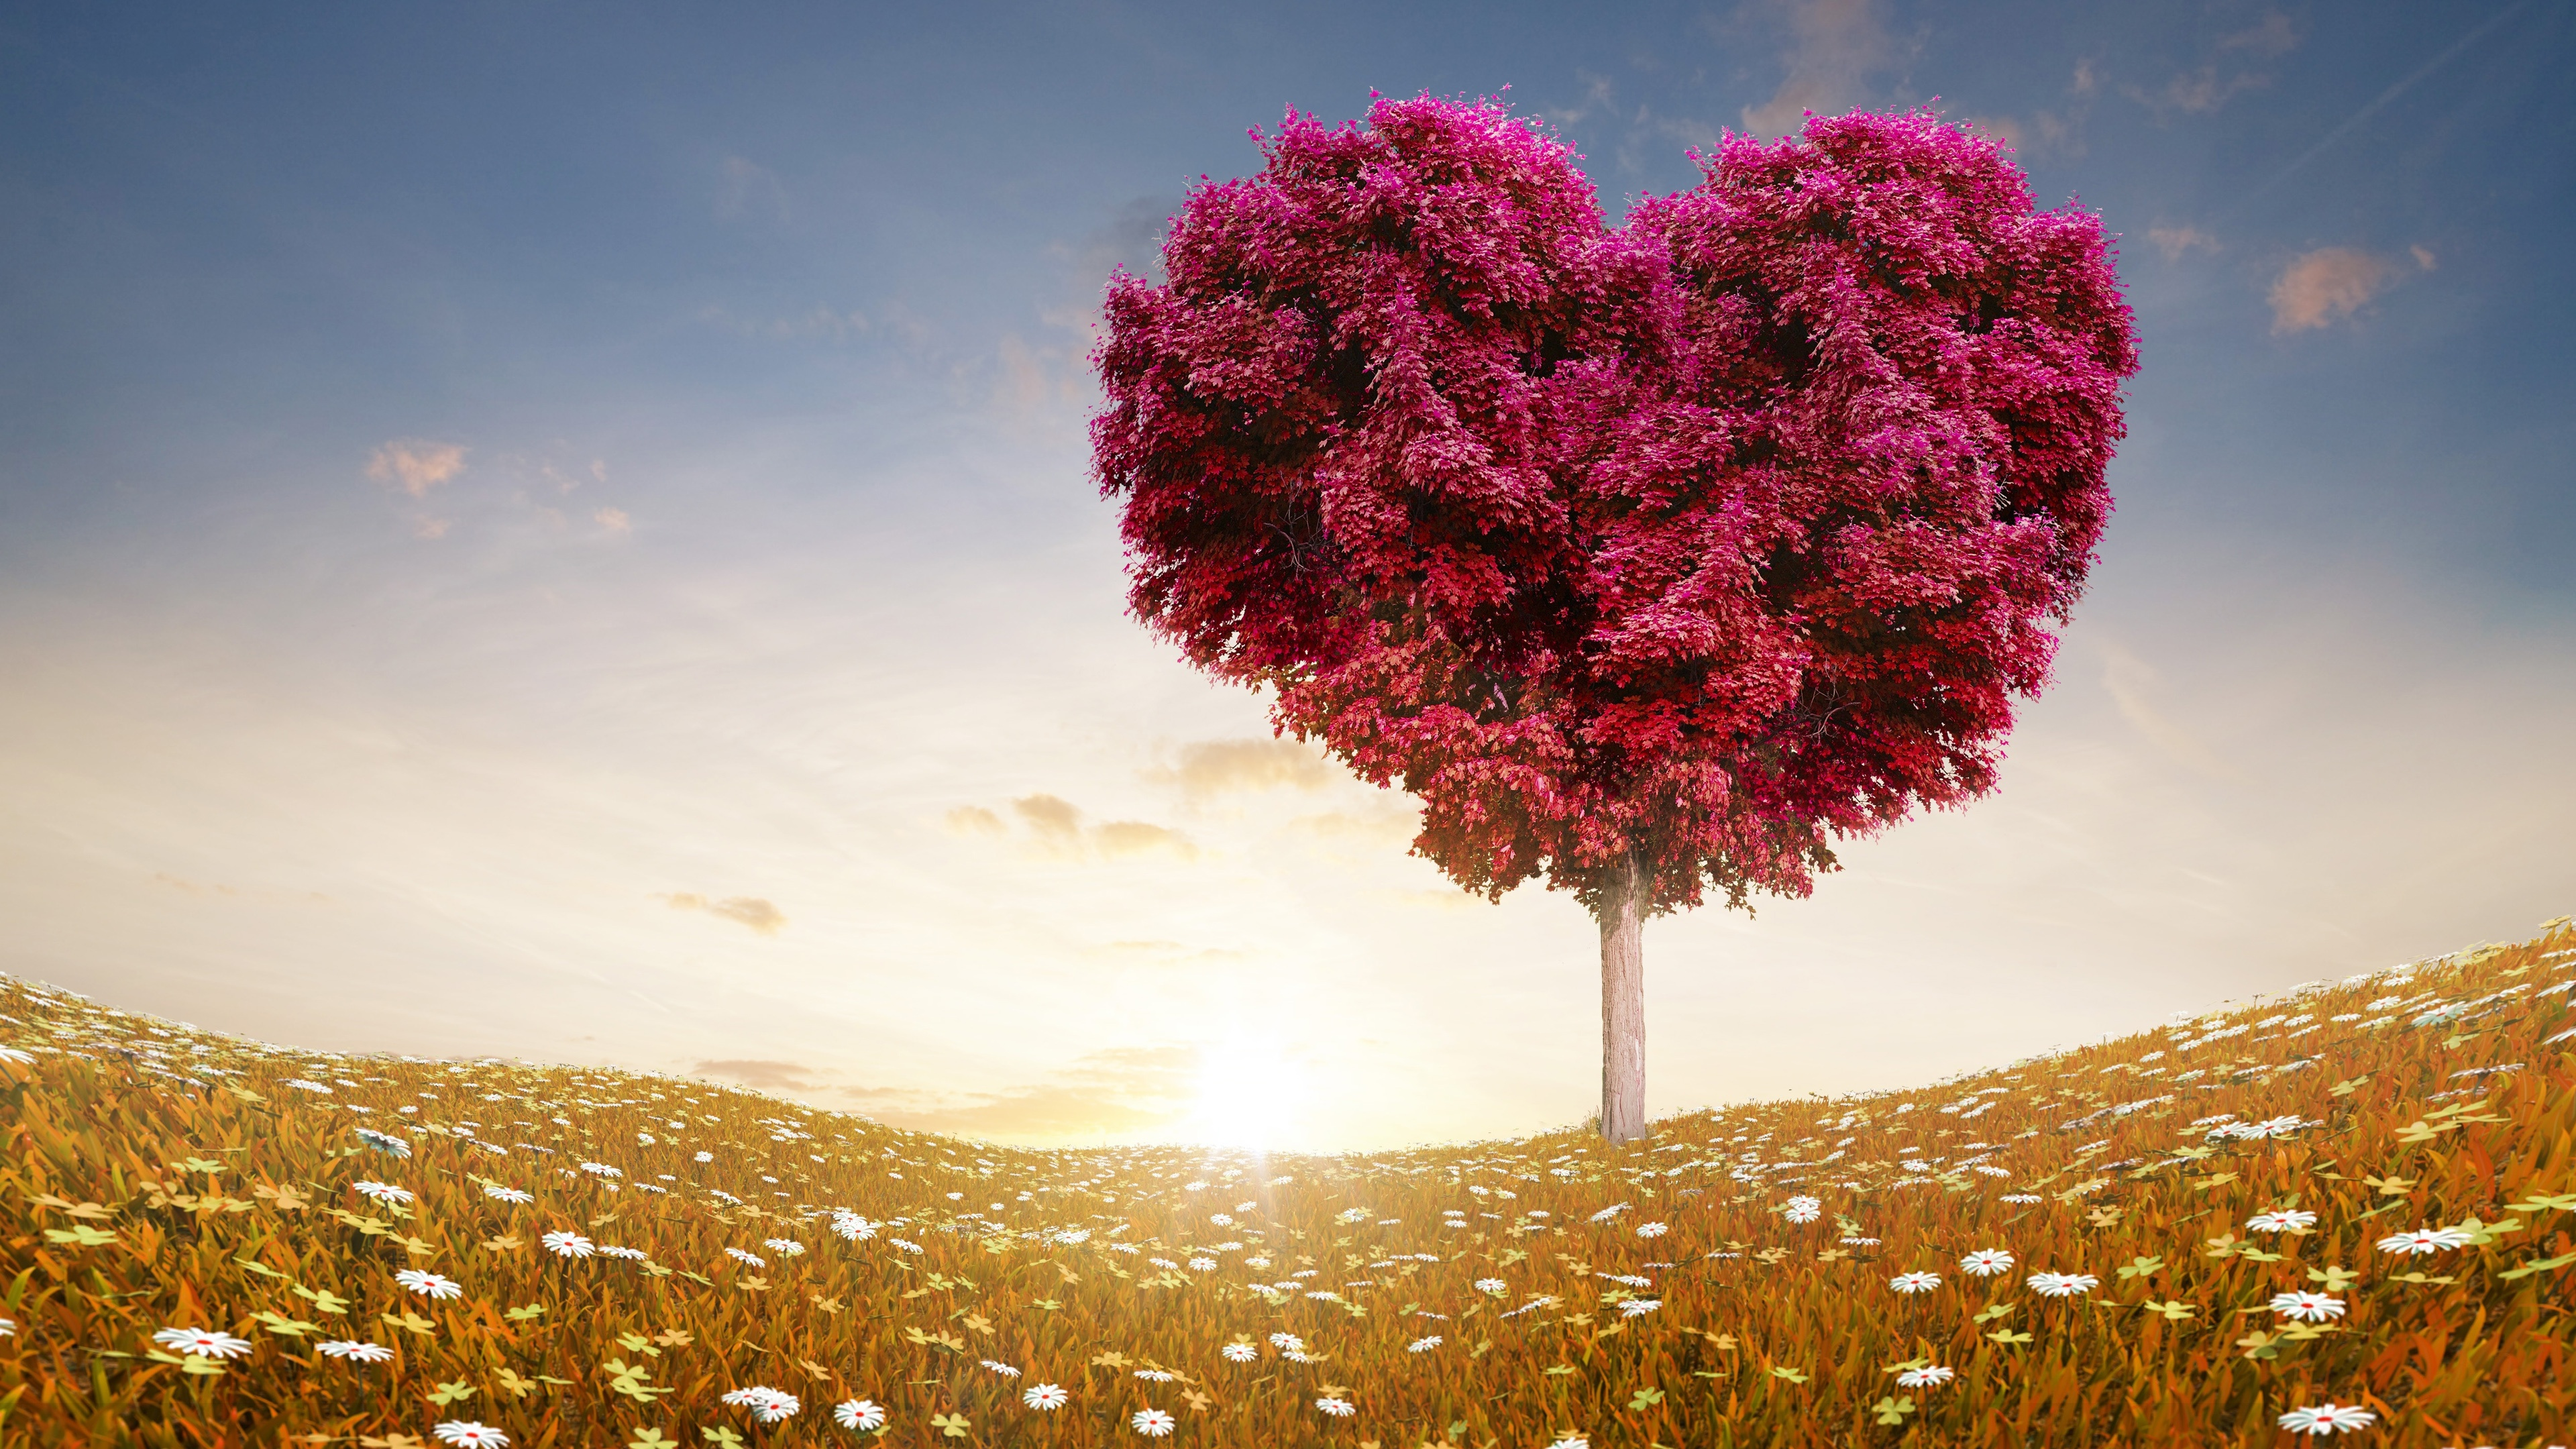 Love Wallpaper Hd For Desktop : love wallpaper tree flowers - HD Desktop Wallpapers 4k HD